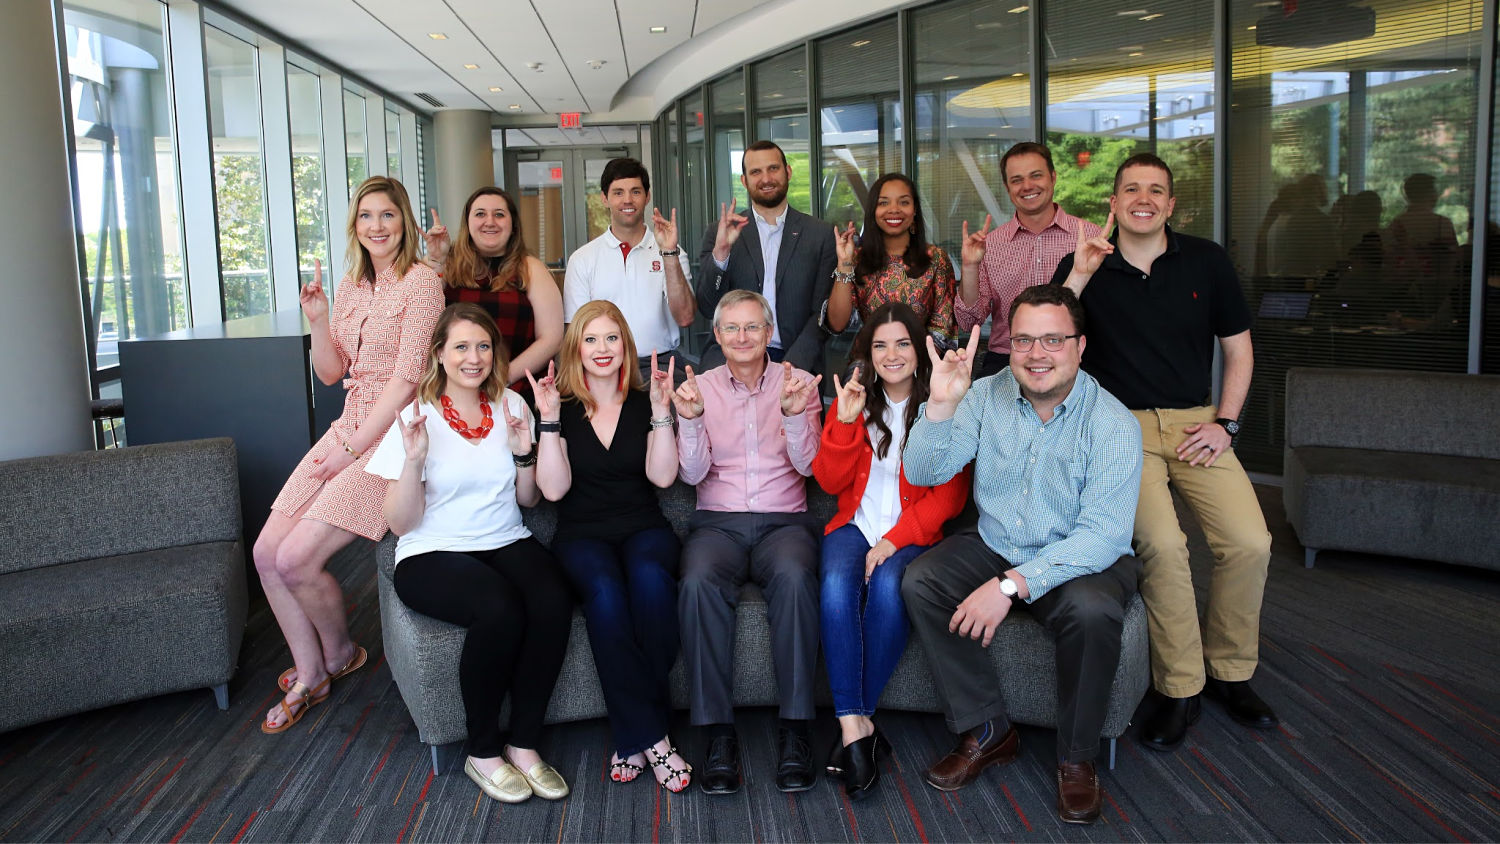 A group of Wilson College of Textiles alumni comprise the Dean's Young Alumni Leadership Council, pictured here both seated and standing, making the Wolfpack symbol